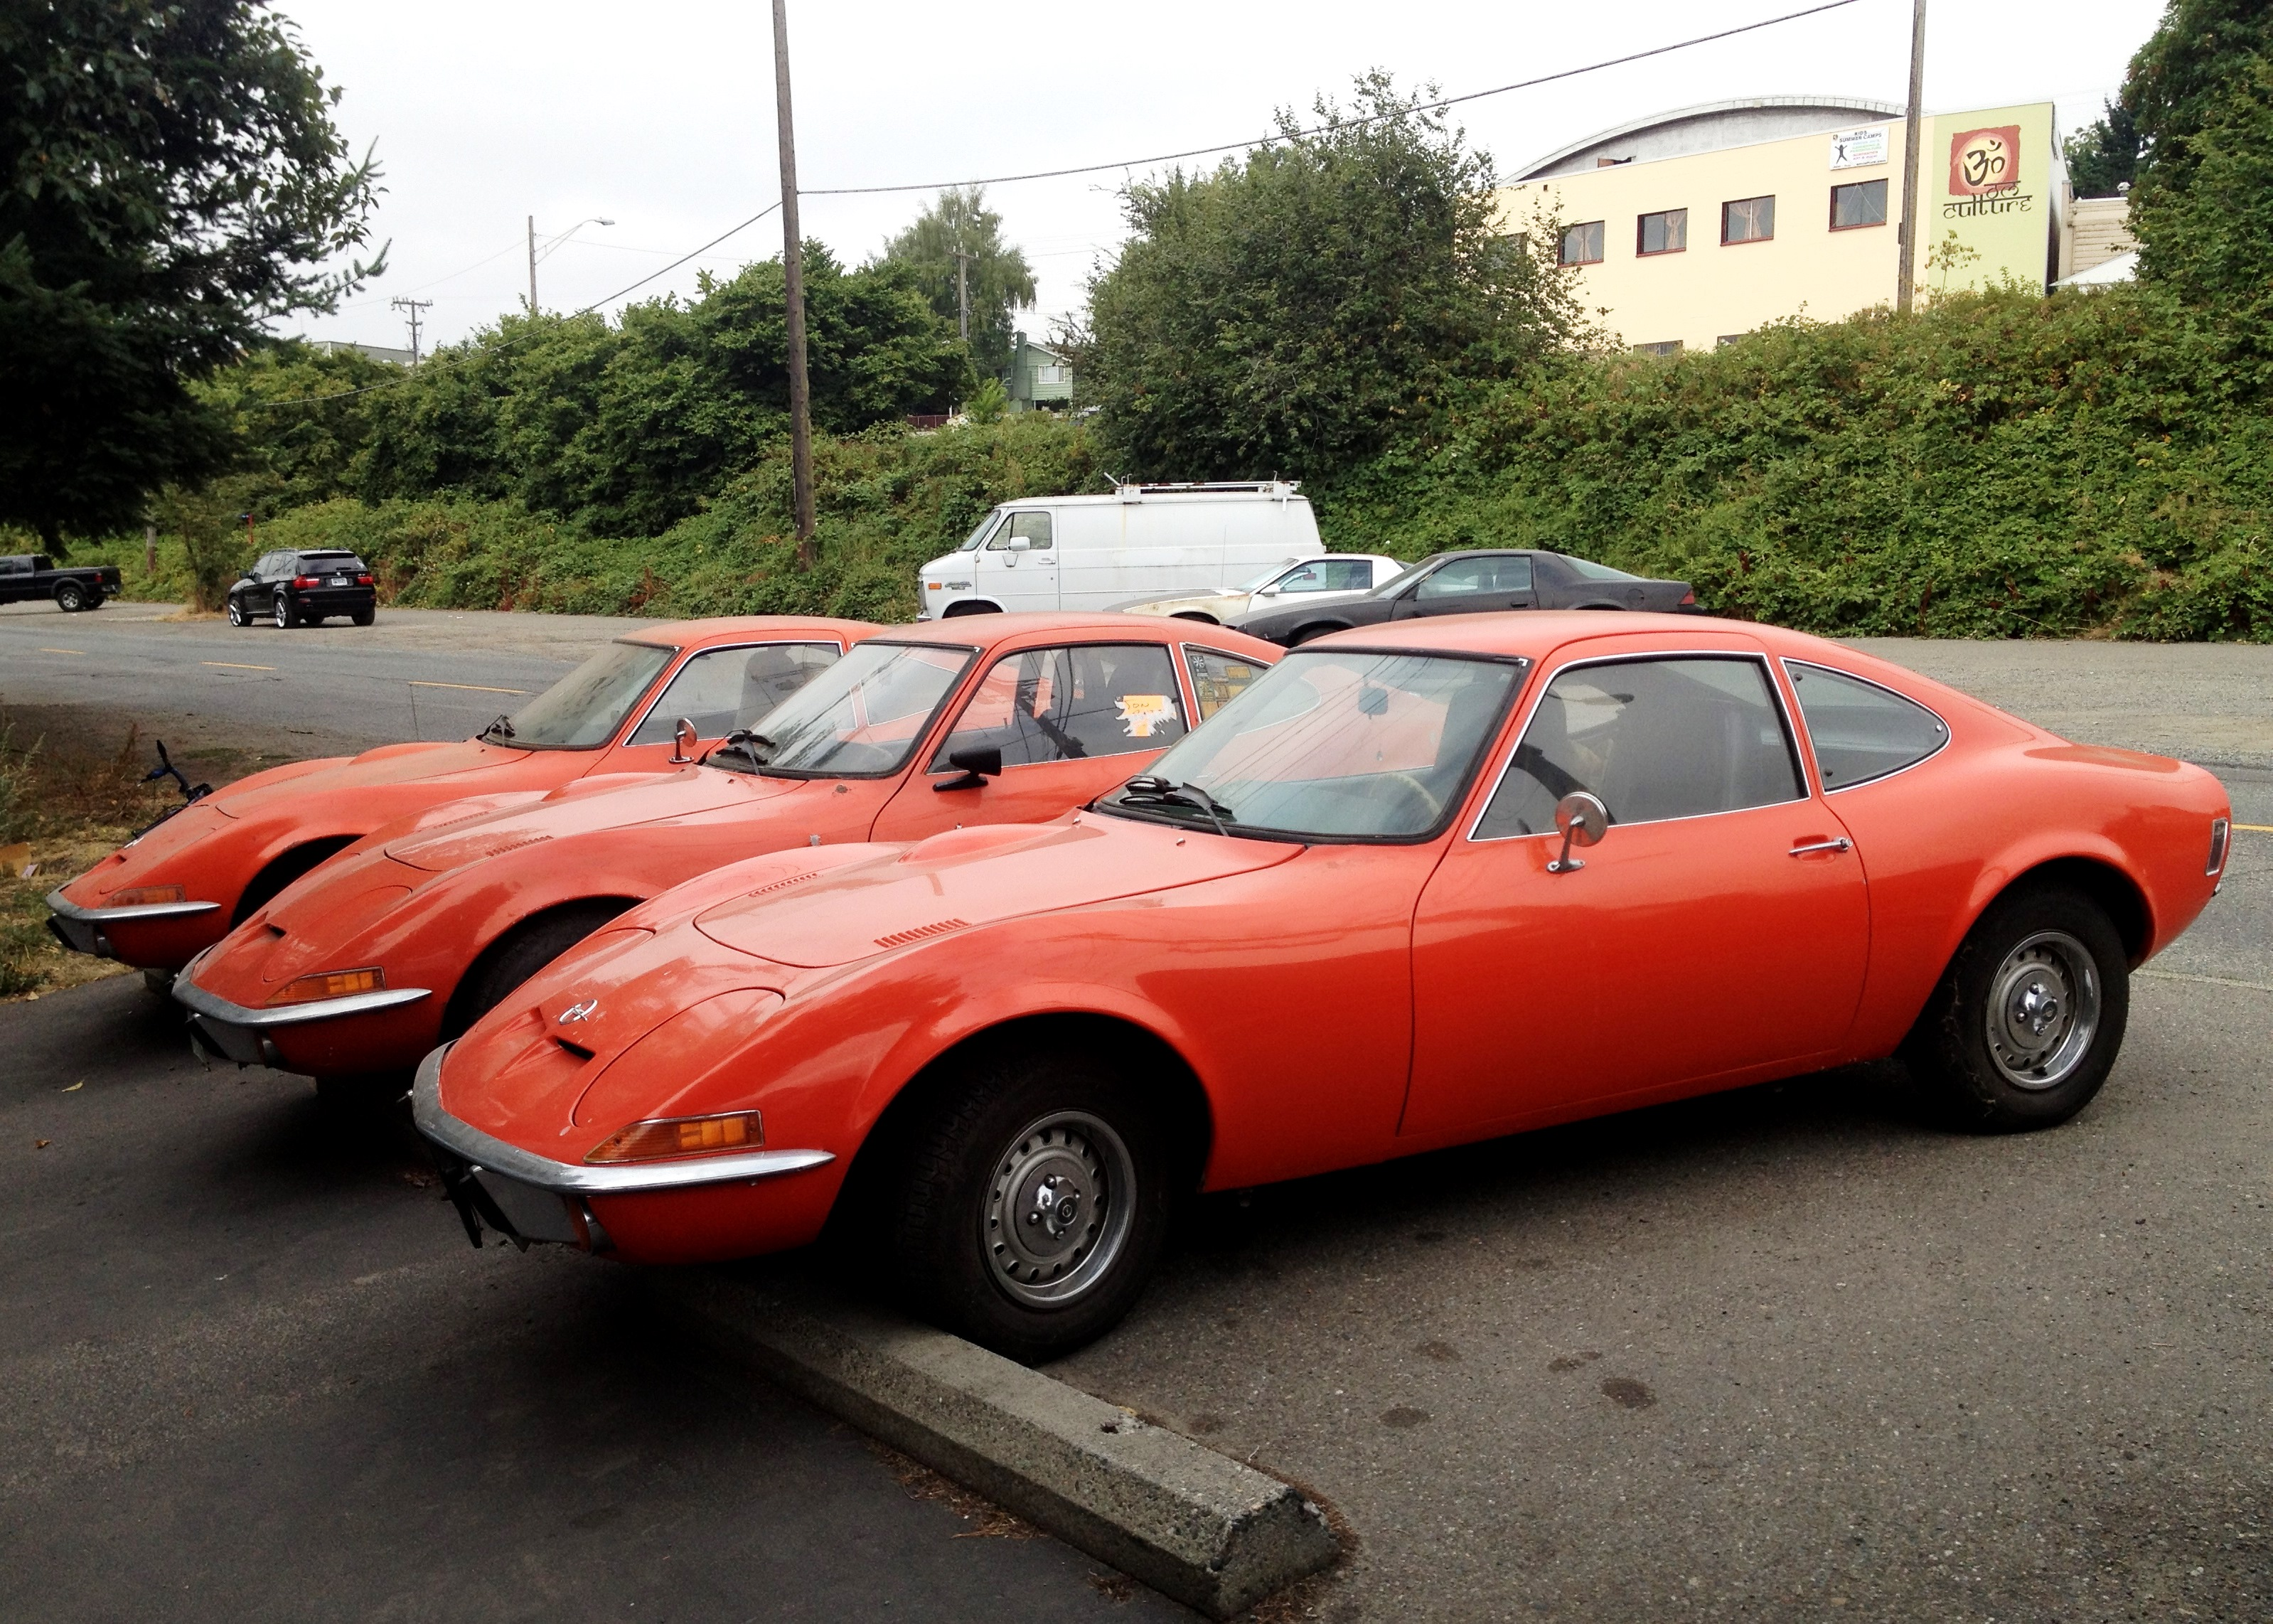 List of Synonyms and Antonyms of the Word: 67 Opel Gt